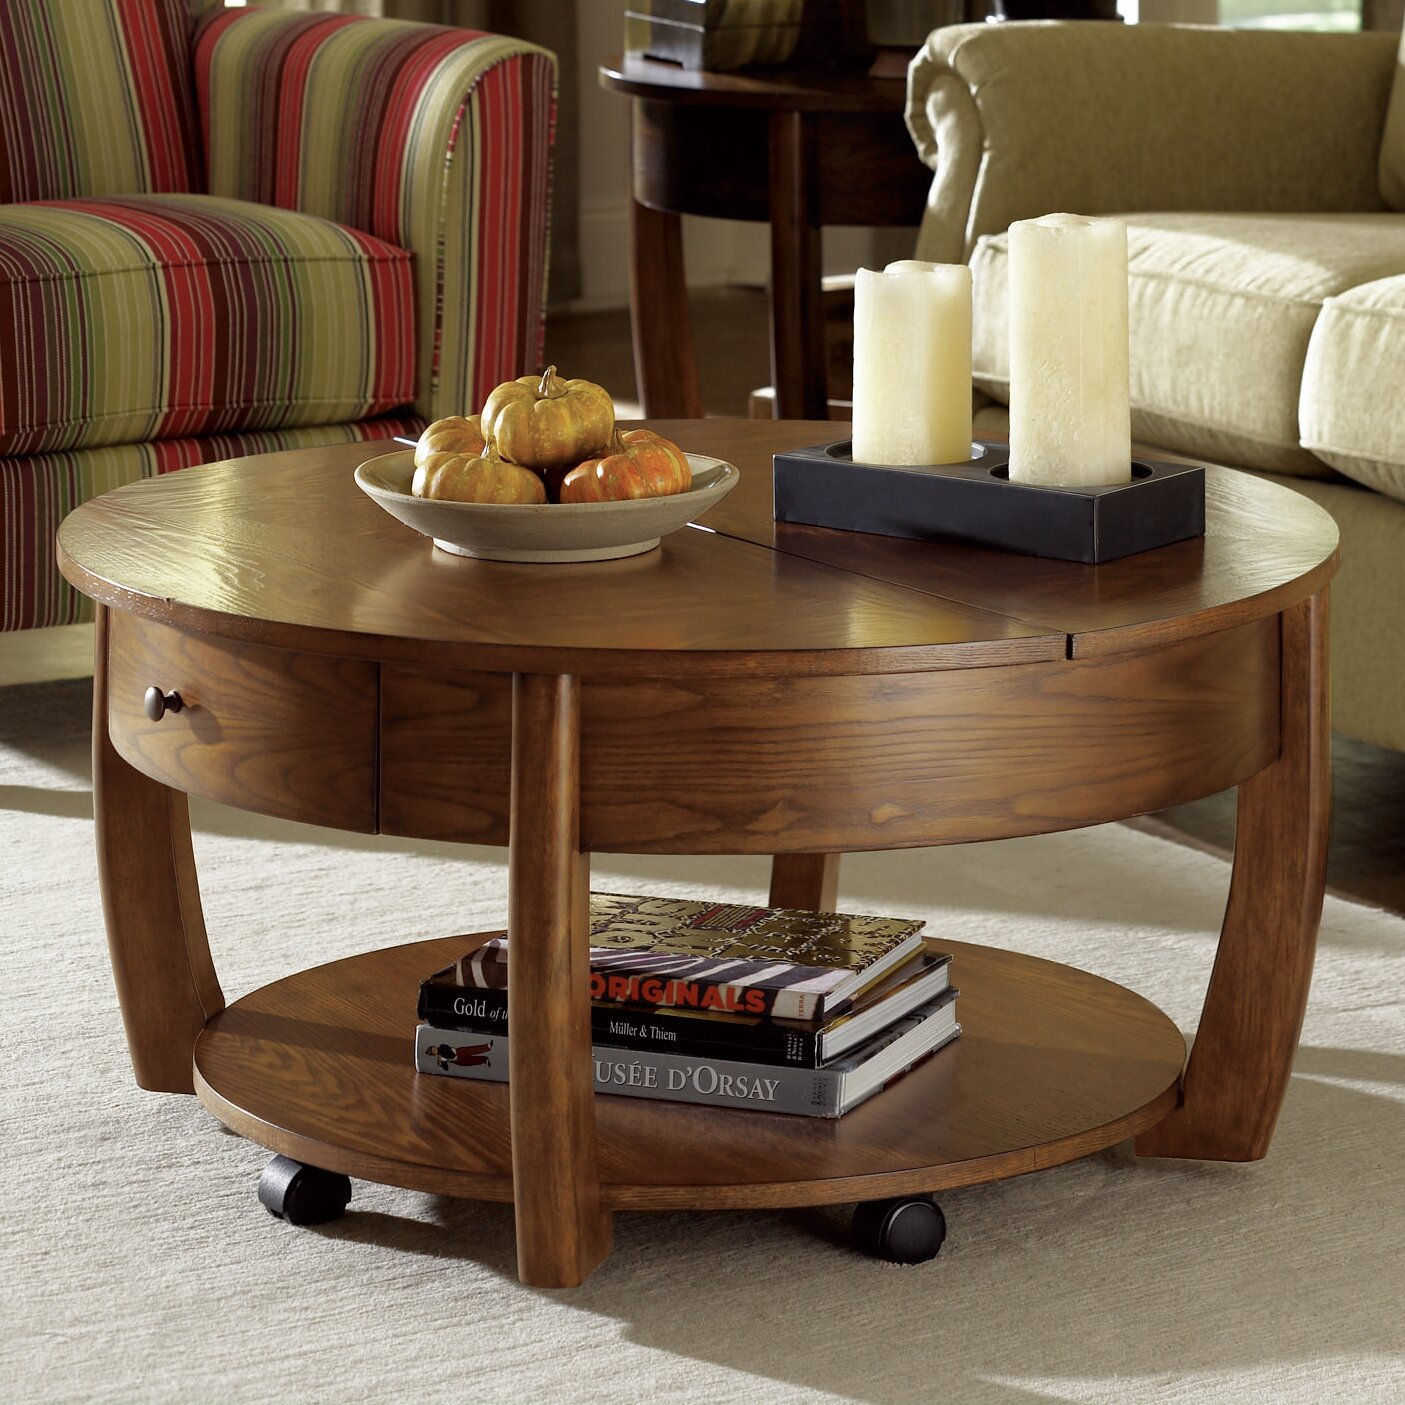 Dual Lift Top Coffee Table Hammary Concierge Coffee Table With Lift Top Reviews Wayfair